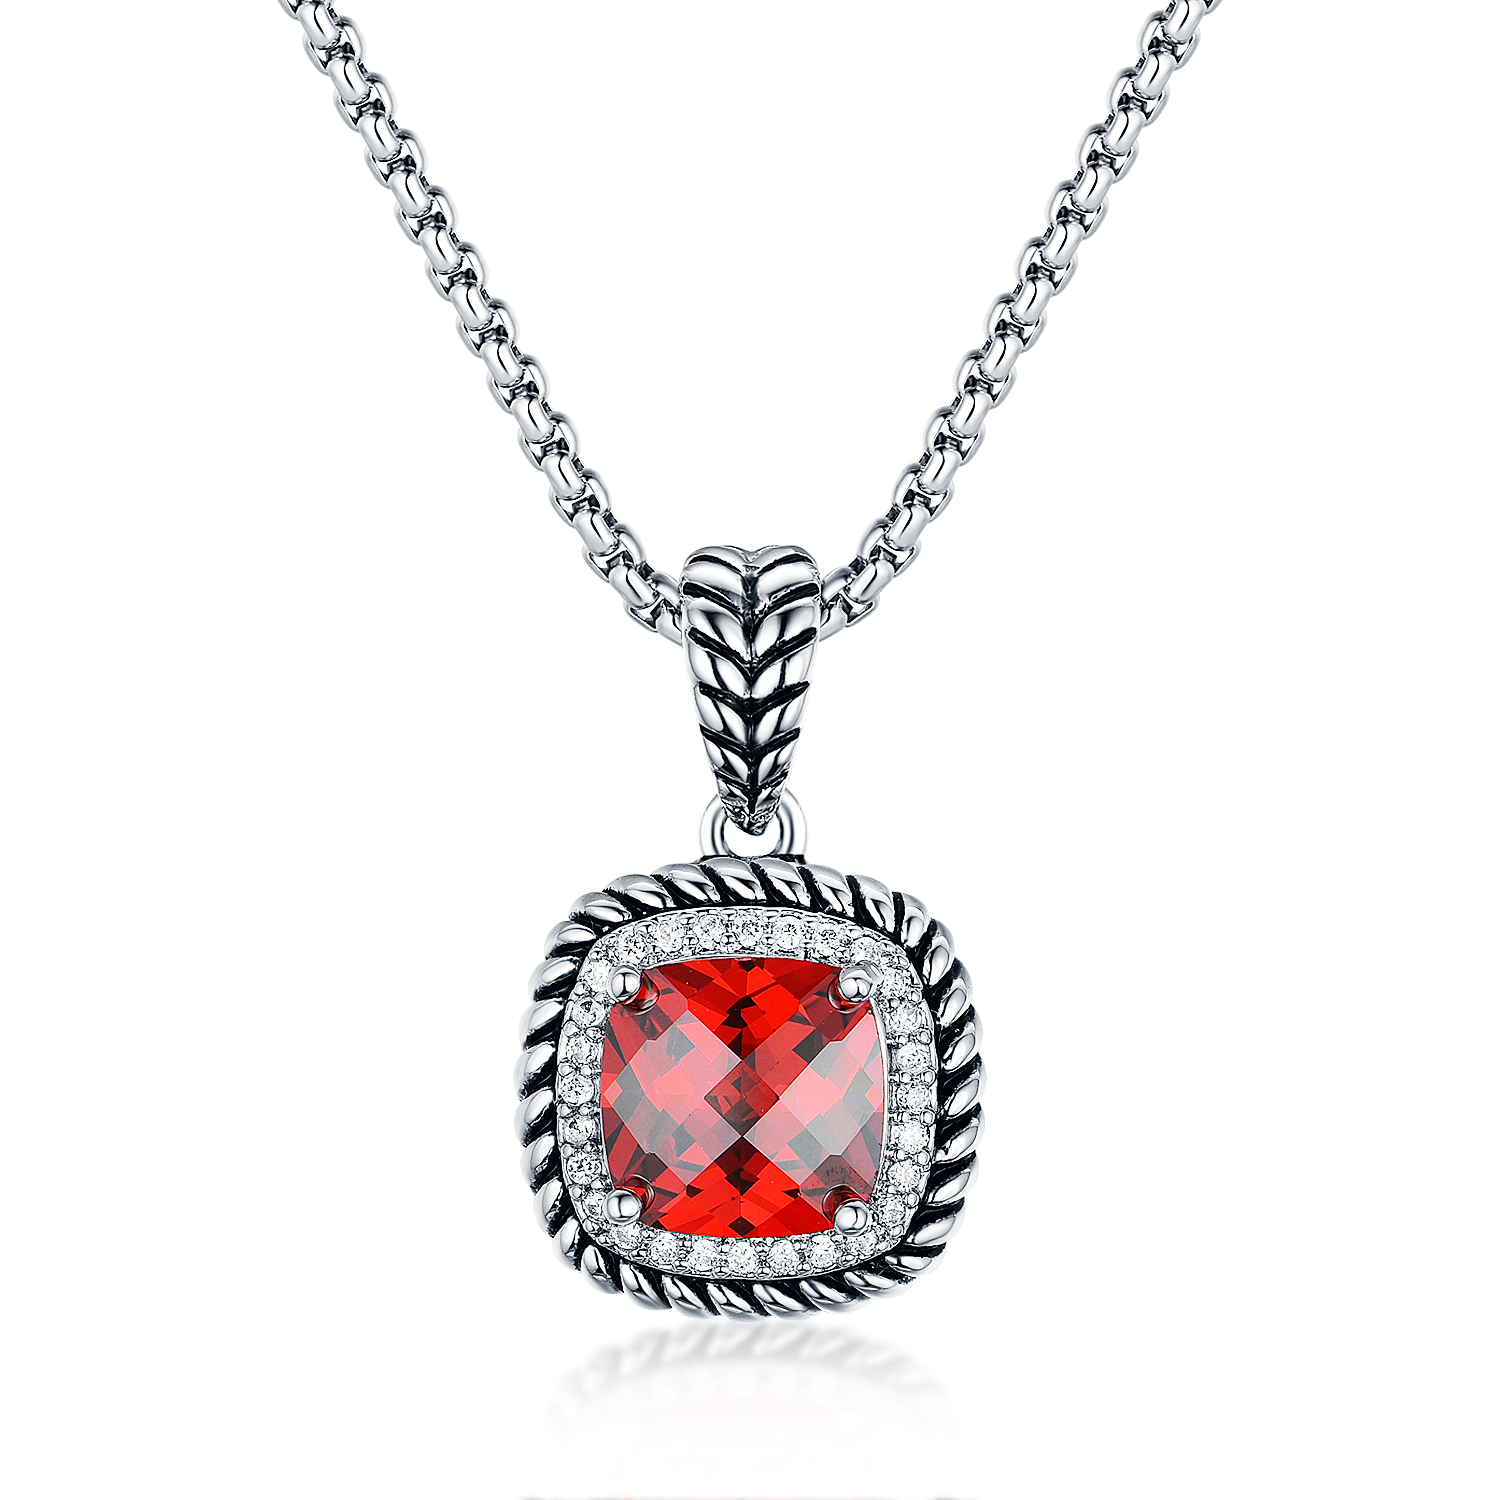 ST2640P- Designer inspired Cable texture Square Pendant with Square Garnet Cubic Zircon & small White CZ surrounded under Rhodium plated from China Top Jewelry vendor